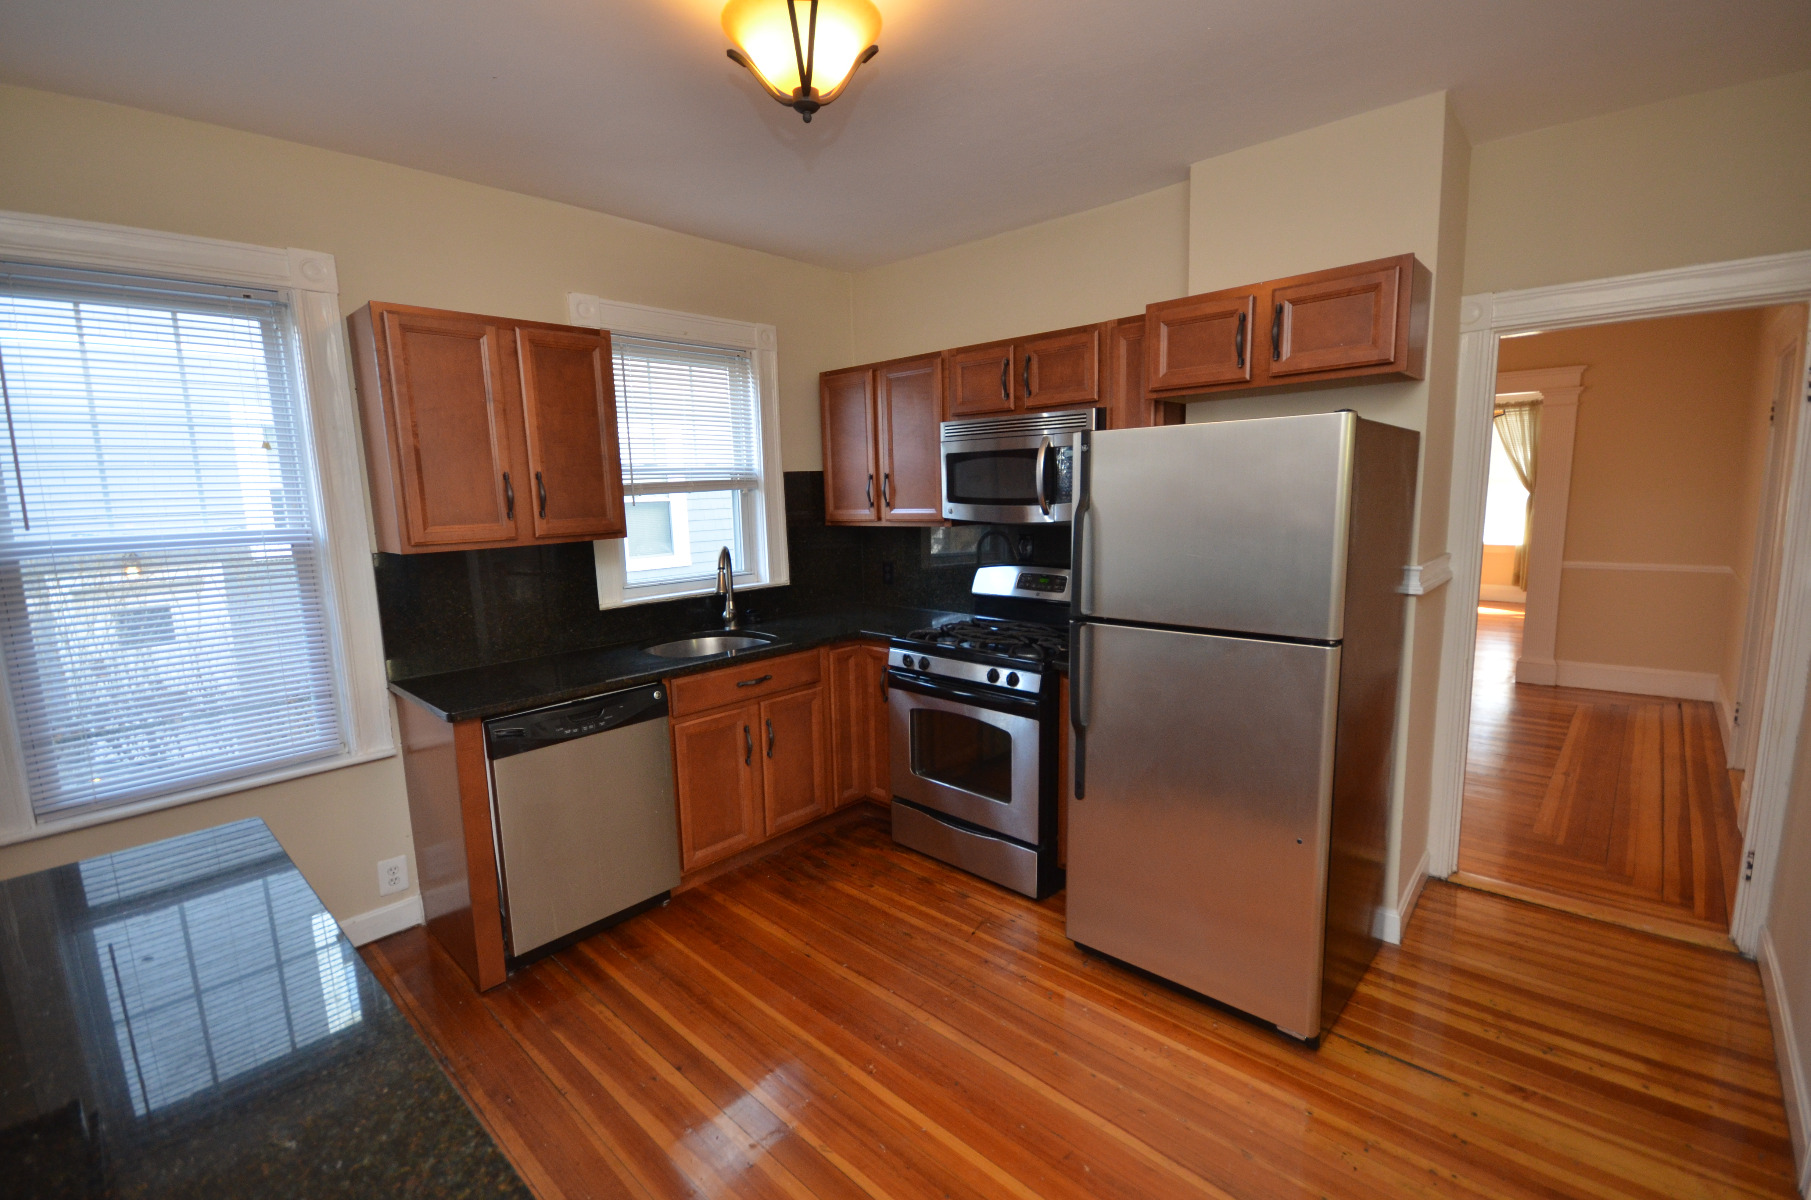 Nicely Renovated 2bed, CAT OK - Avail NOW! 1car Pkg.